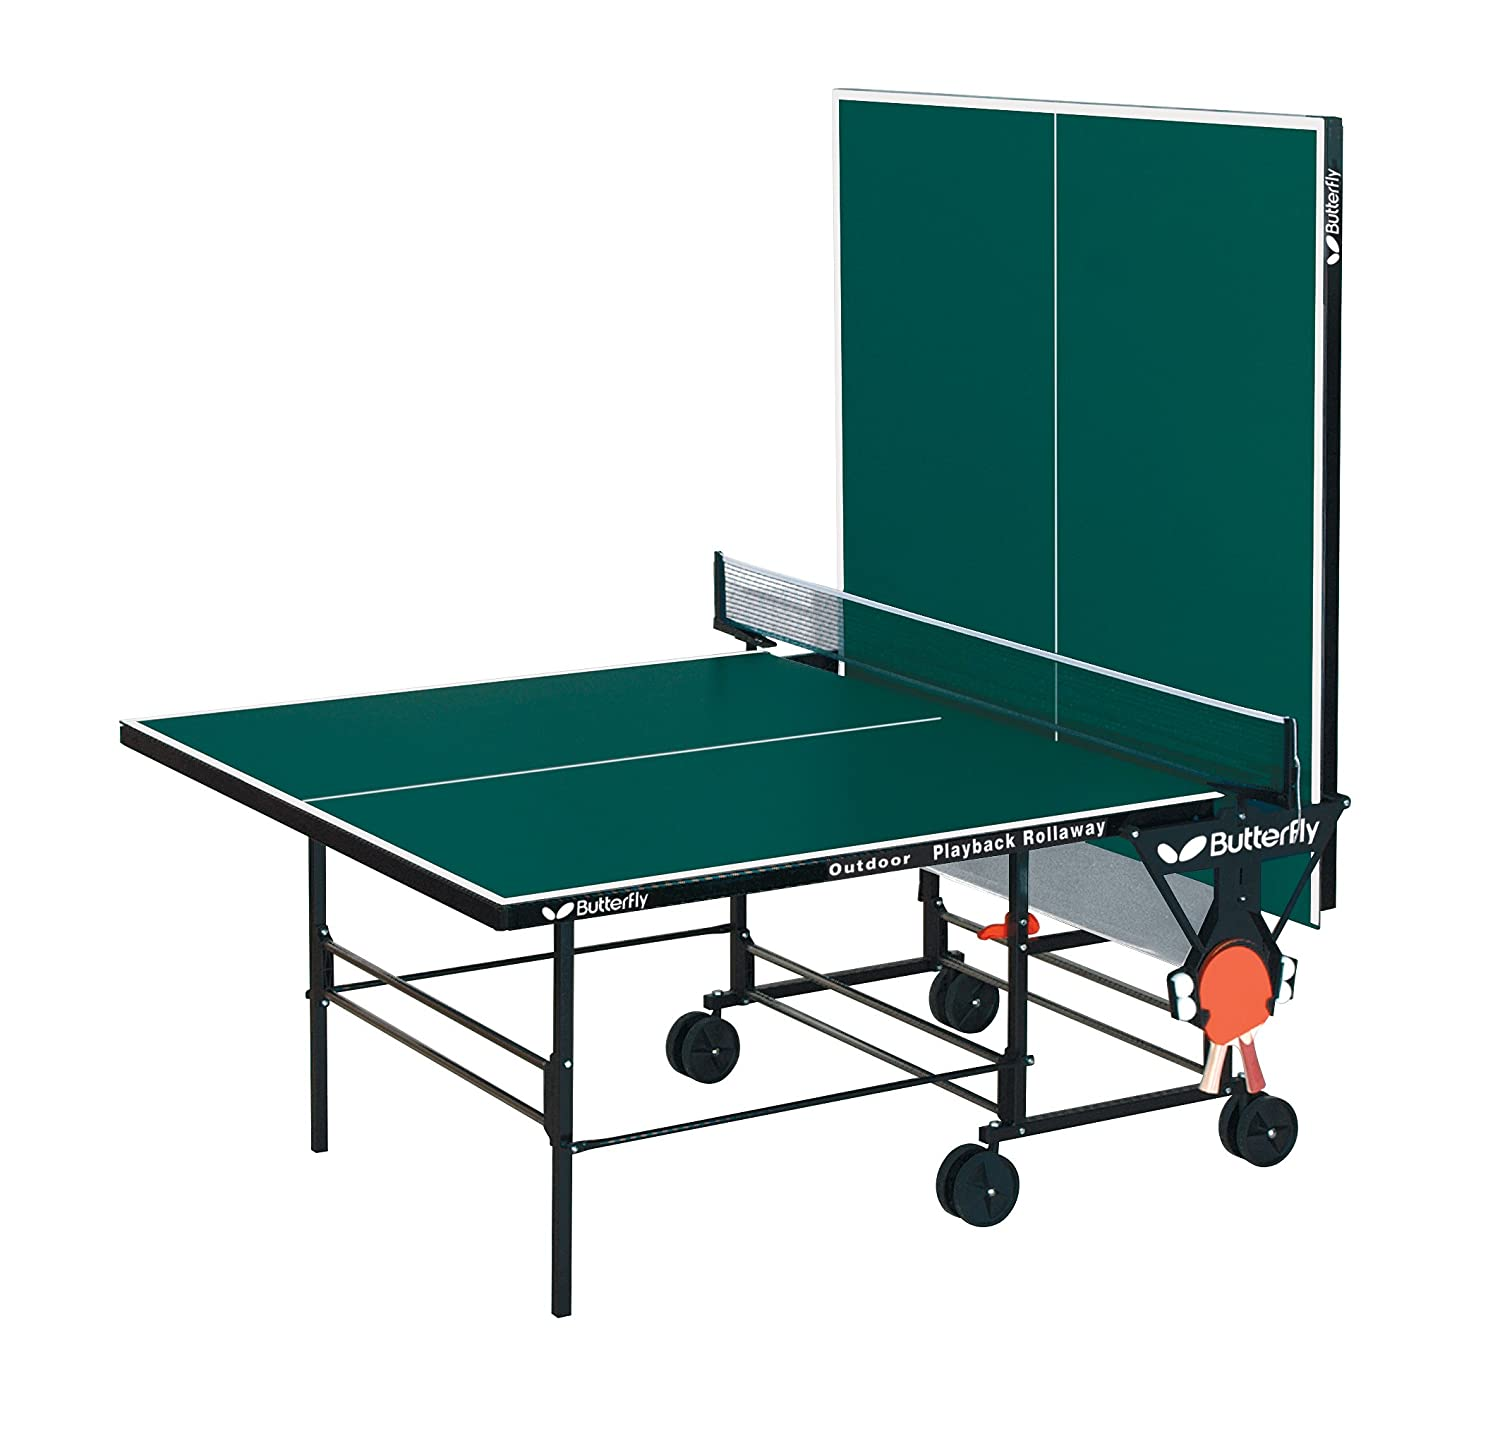 Marvelous Amazon.com : Butterfly Playback Rollaway Indoor/Outdoor Table Tennis Table  : Outdoor Ping Pong Table : Sports U0026 Outdoors